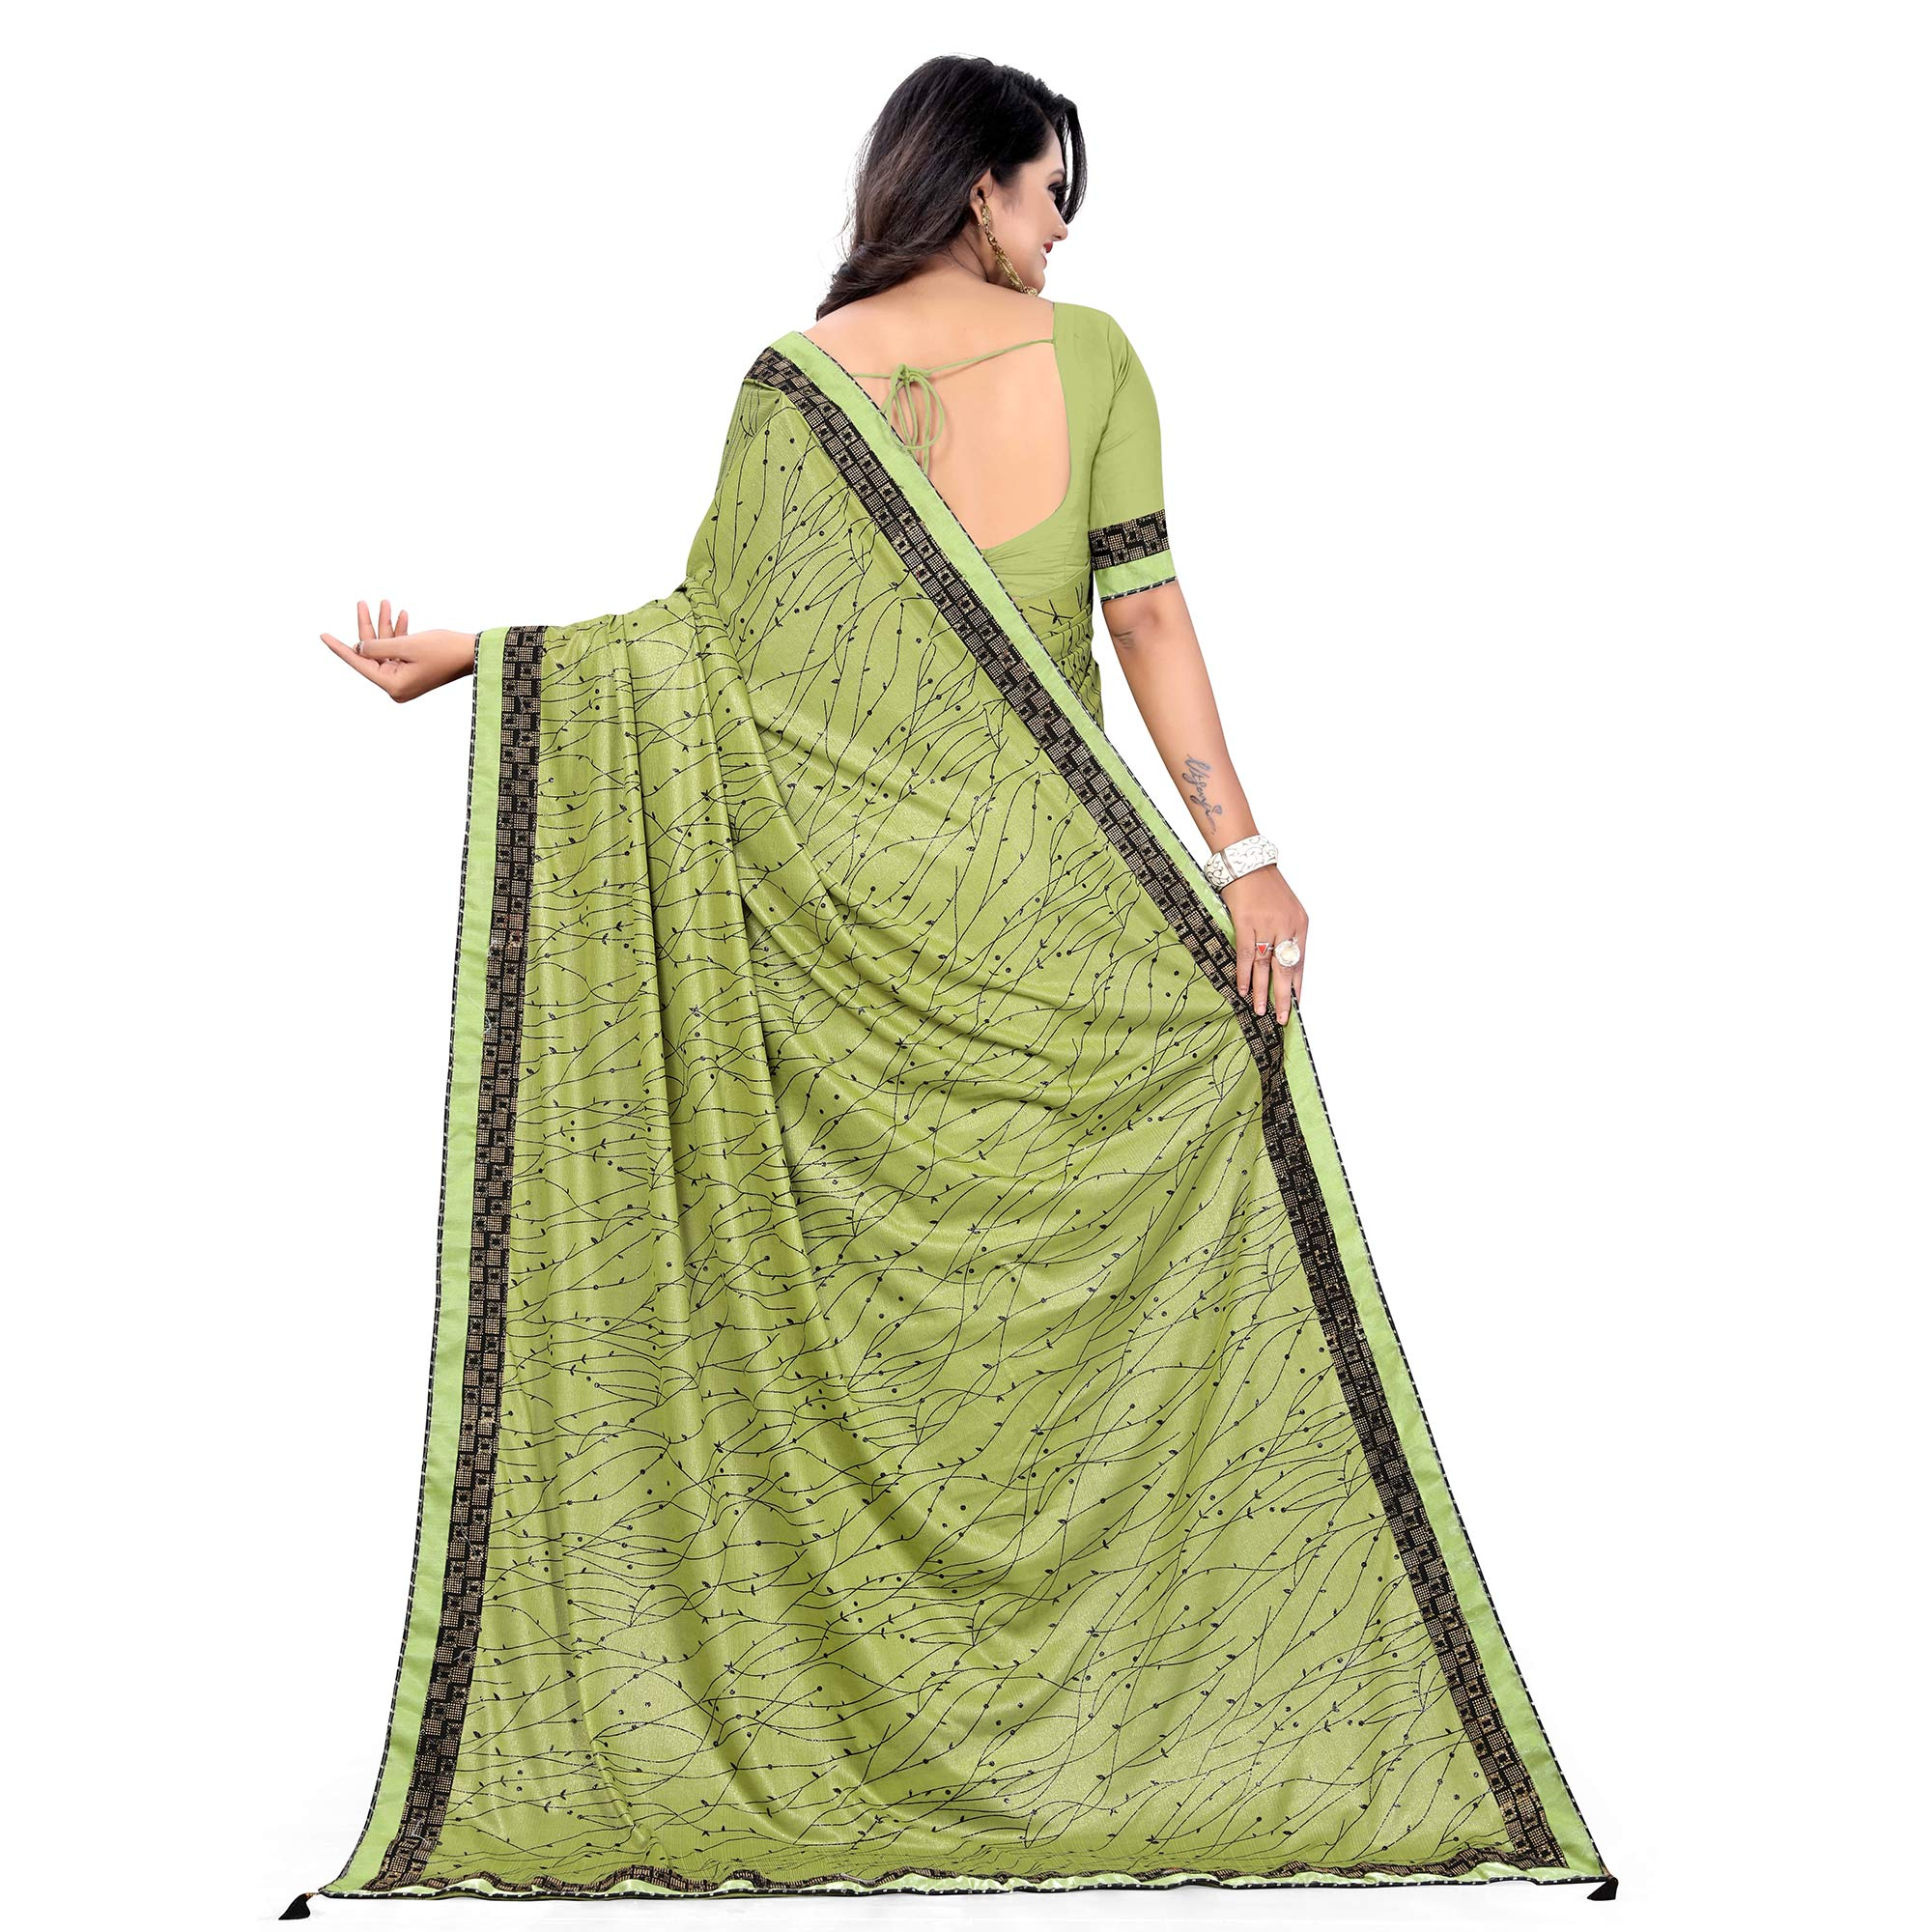 Opulent Green Colored Party Wear Printed Lycra Blend Saree